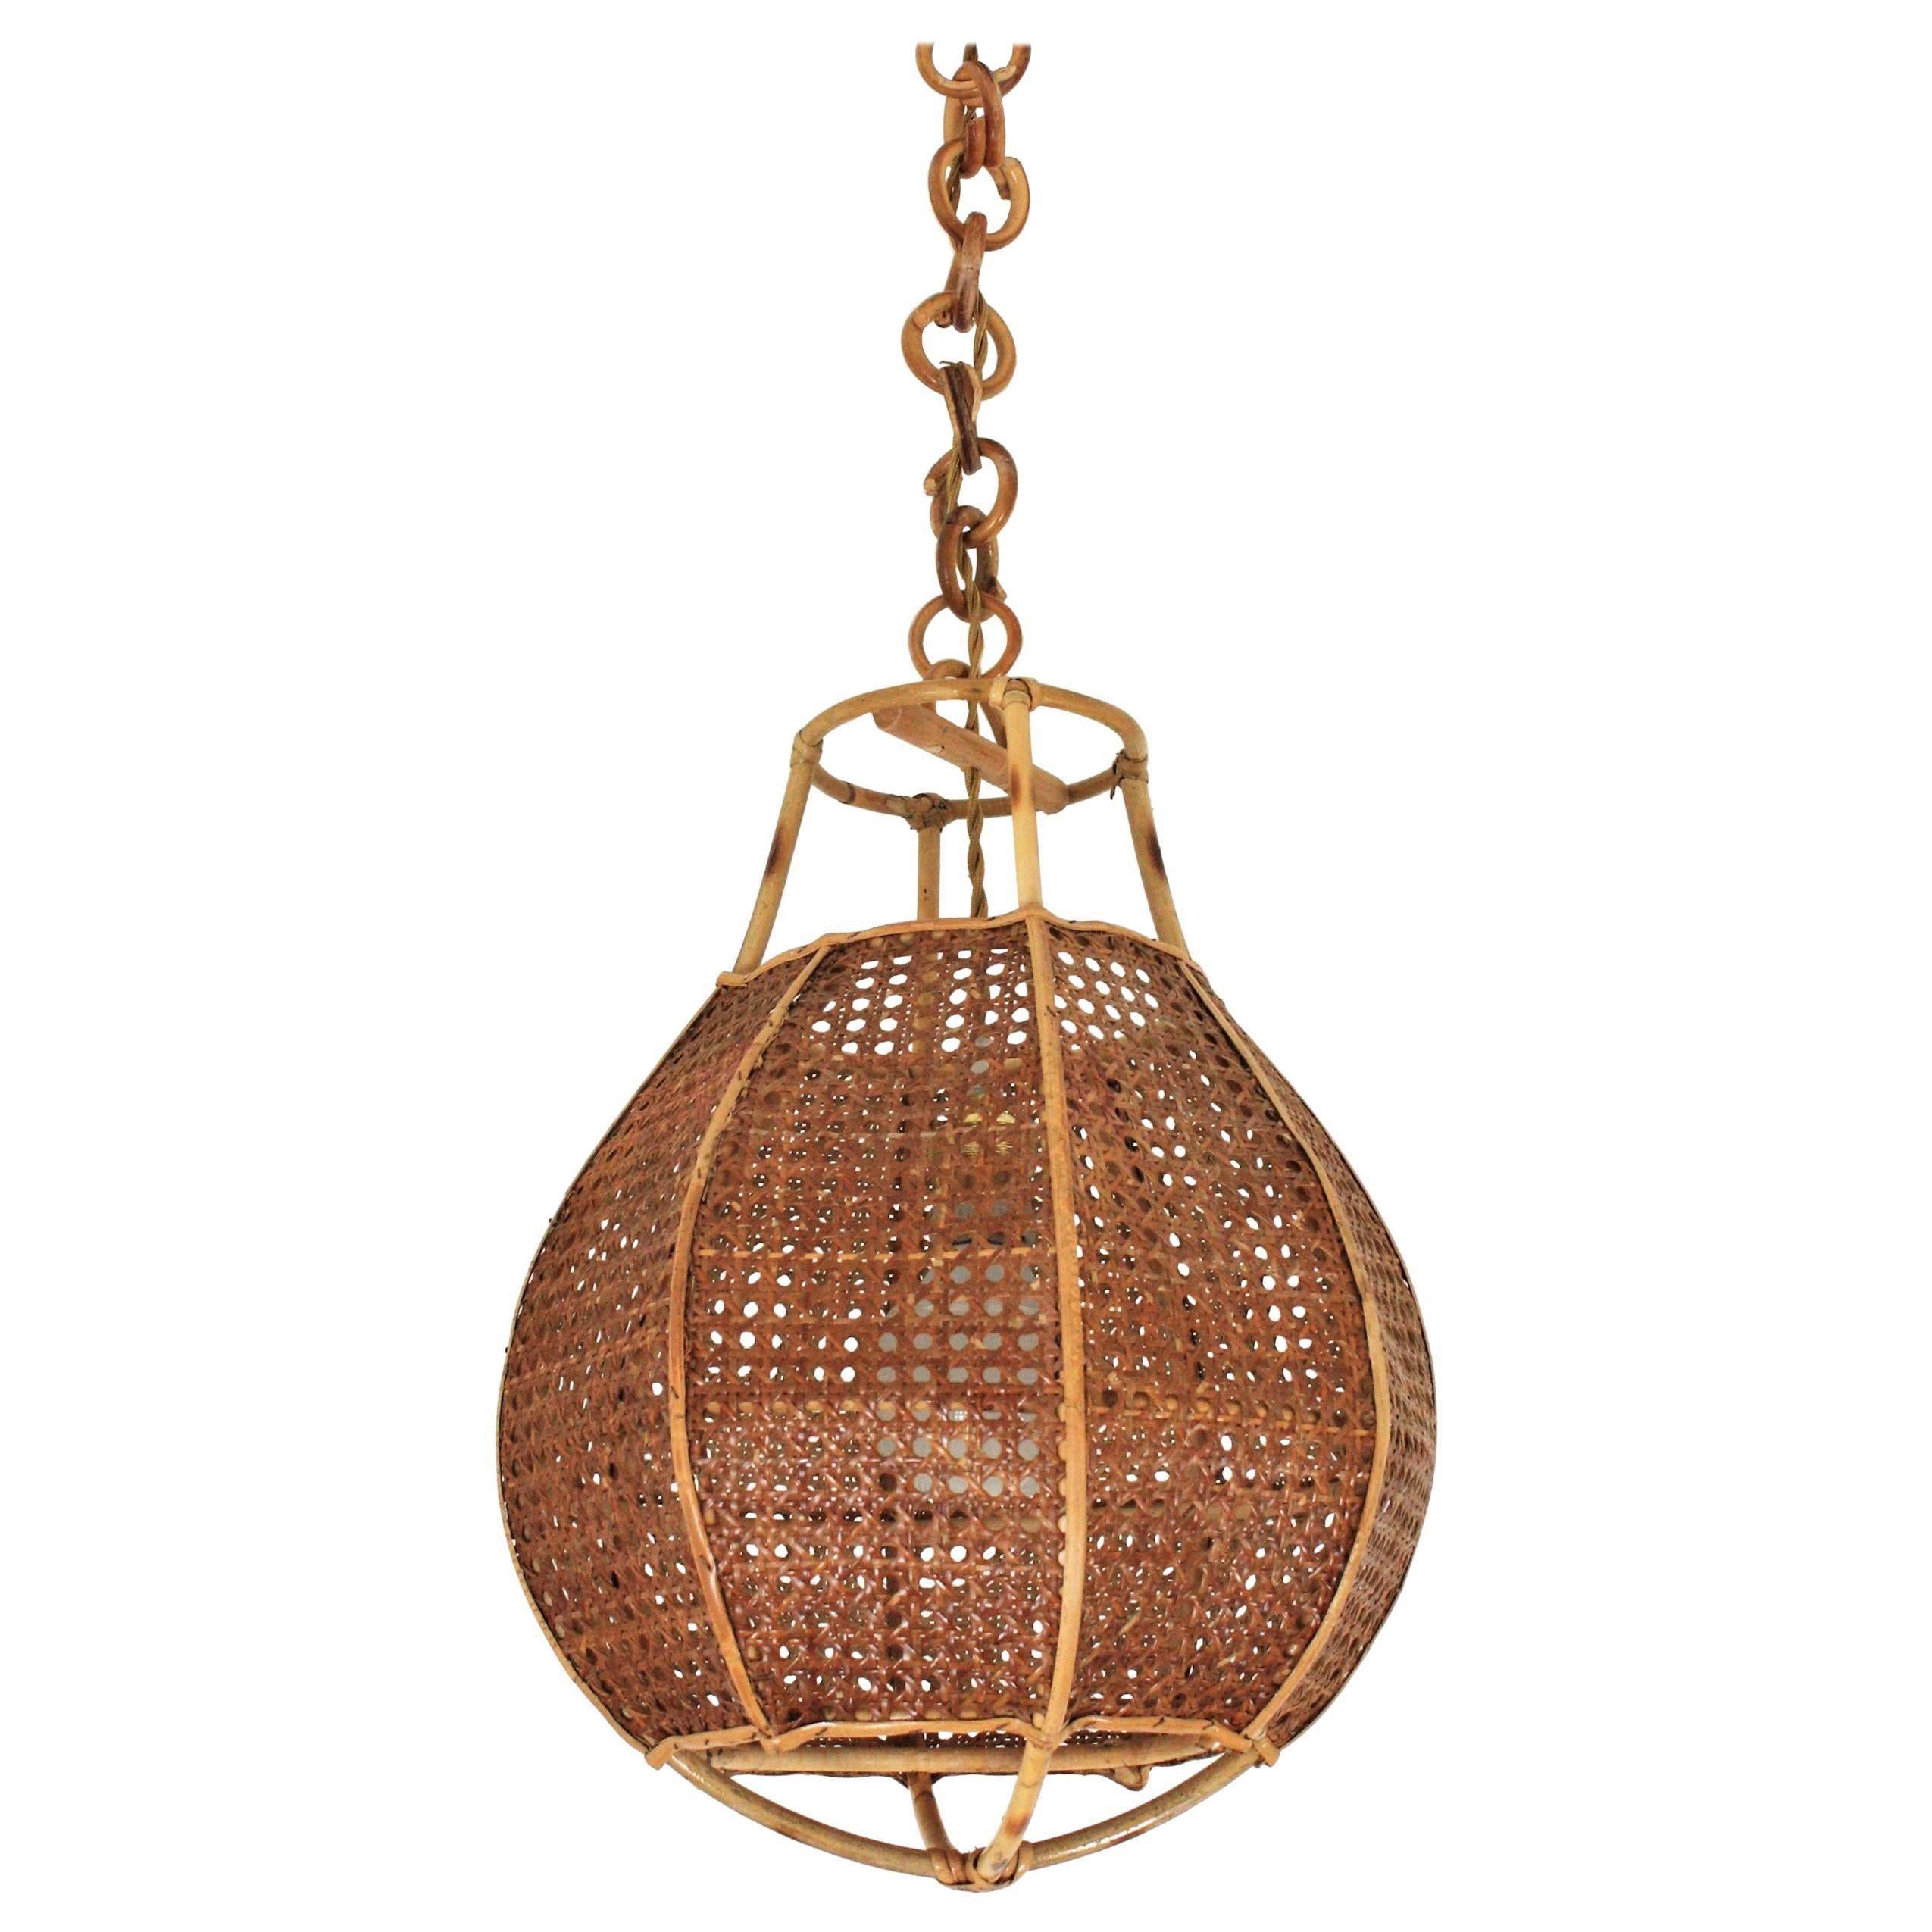 Italian Modernist Wicker Wire and Rattan Globe Pendant or Hanging Light, 1950s